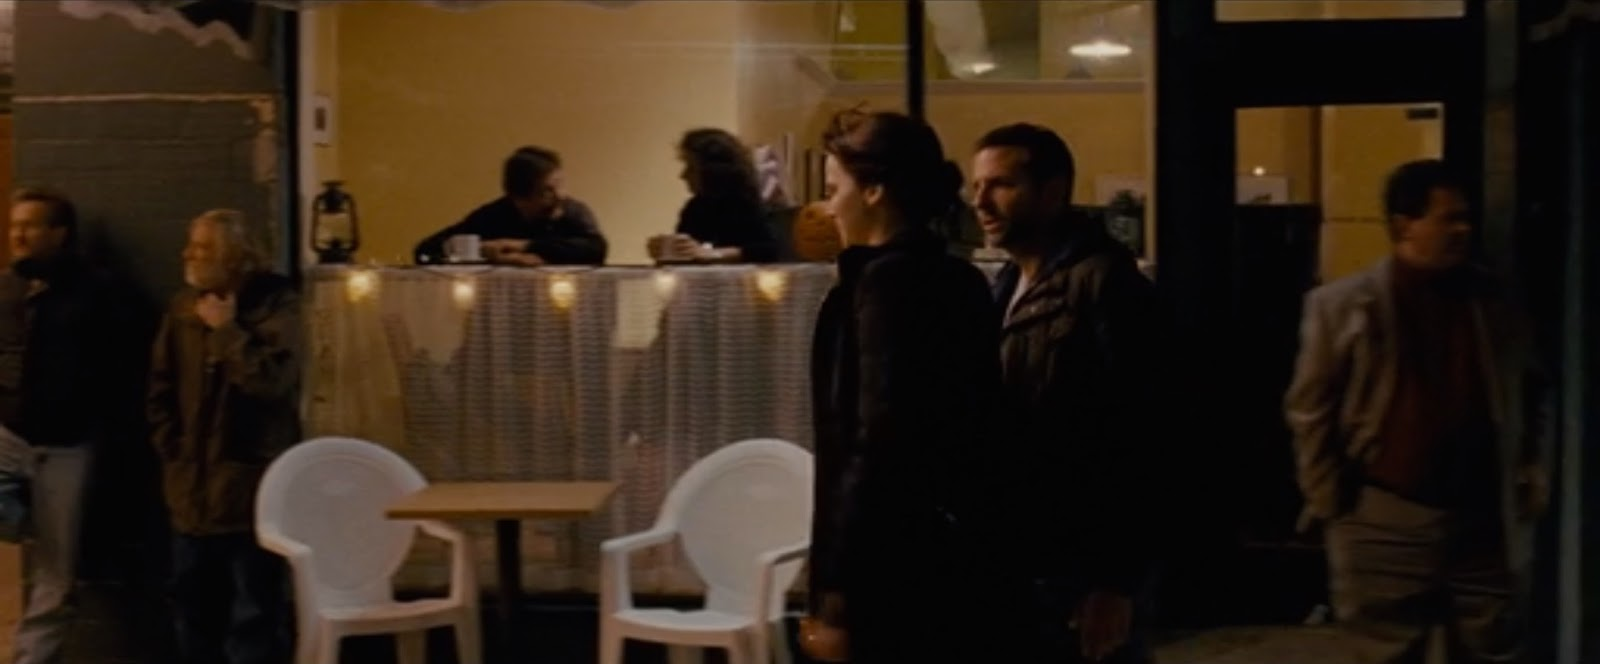 scene analysis of pat and tiffany in silver linings playbook a by david o russell An adaptation of the 2008 matthew quick novel, david o russell's silver linings playbook has already picked up numerous accolades, including the rare achievement of being nominated in all four .